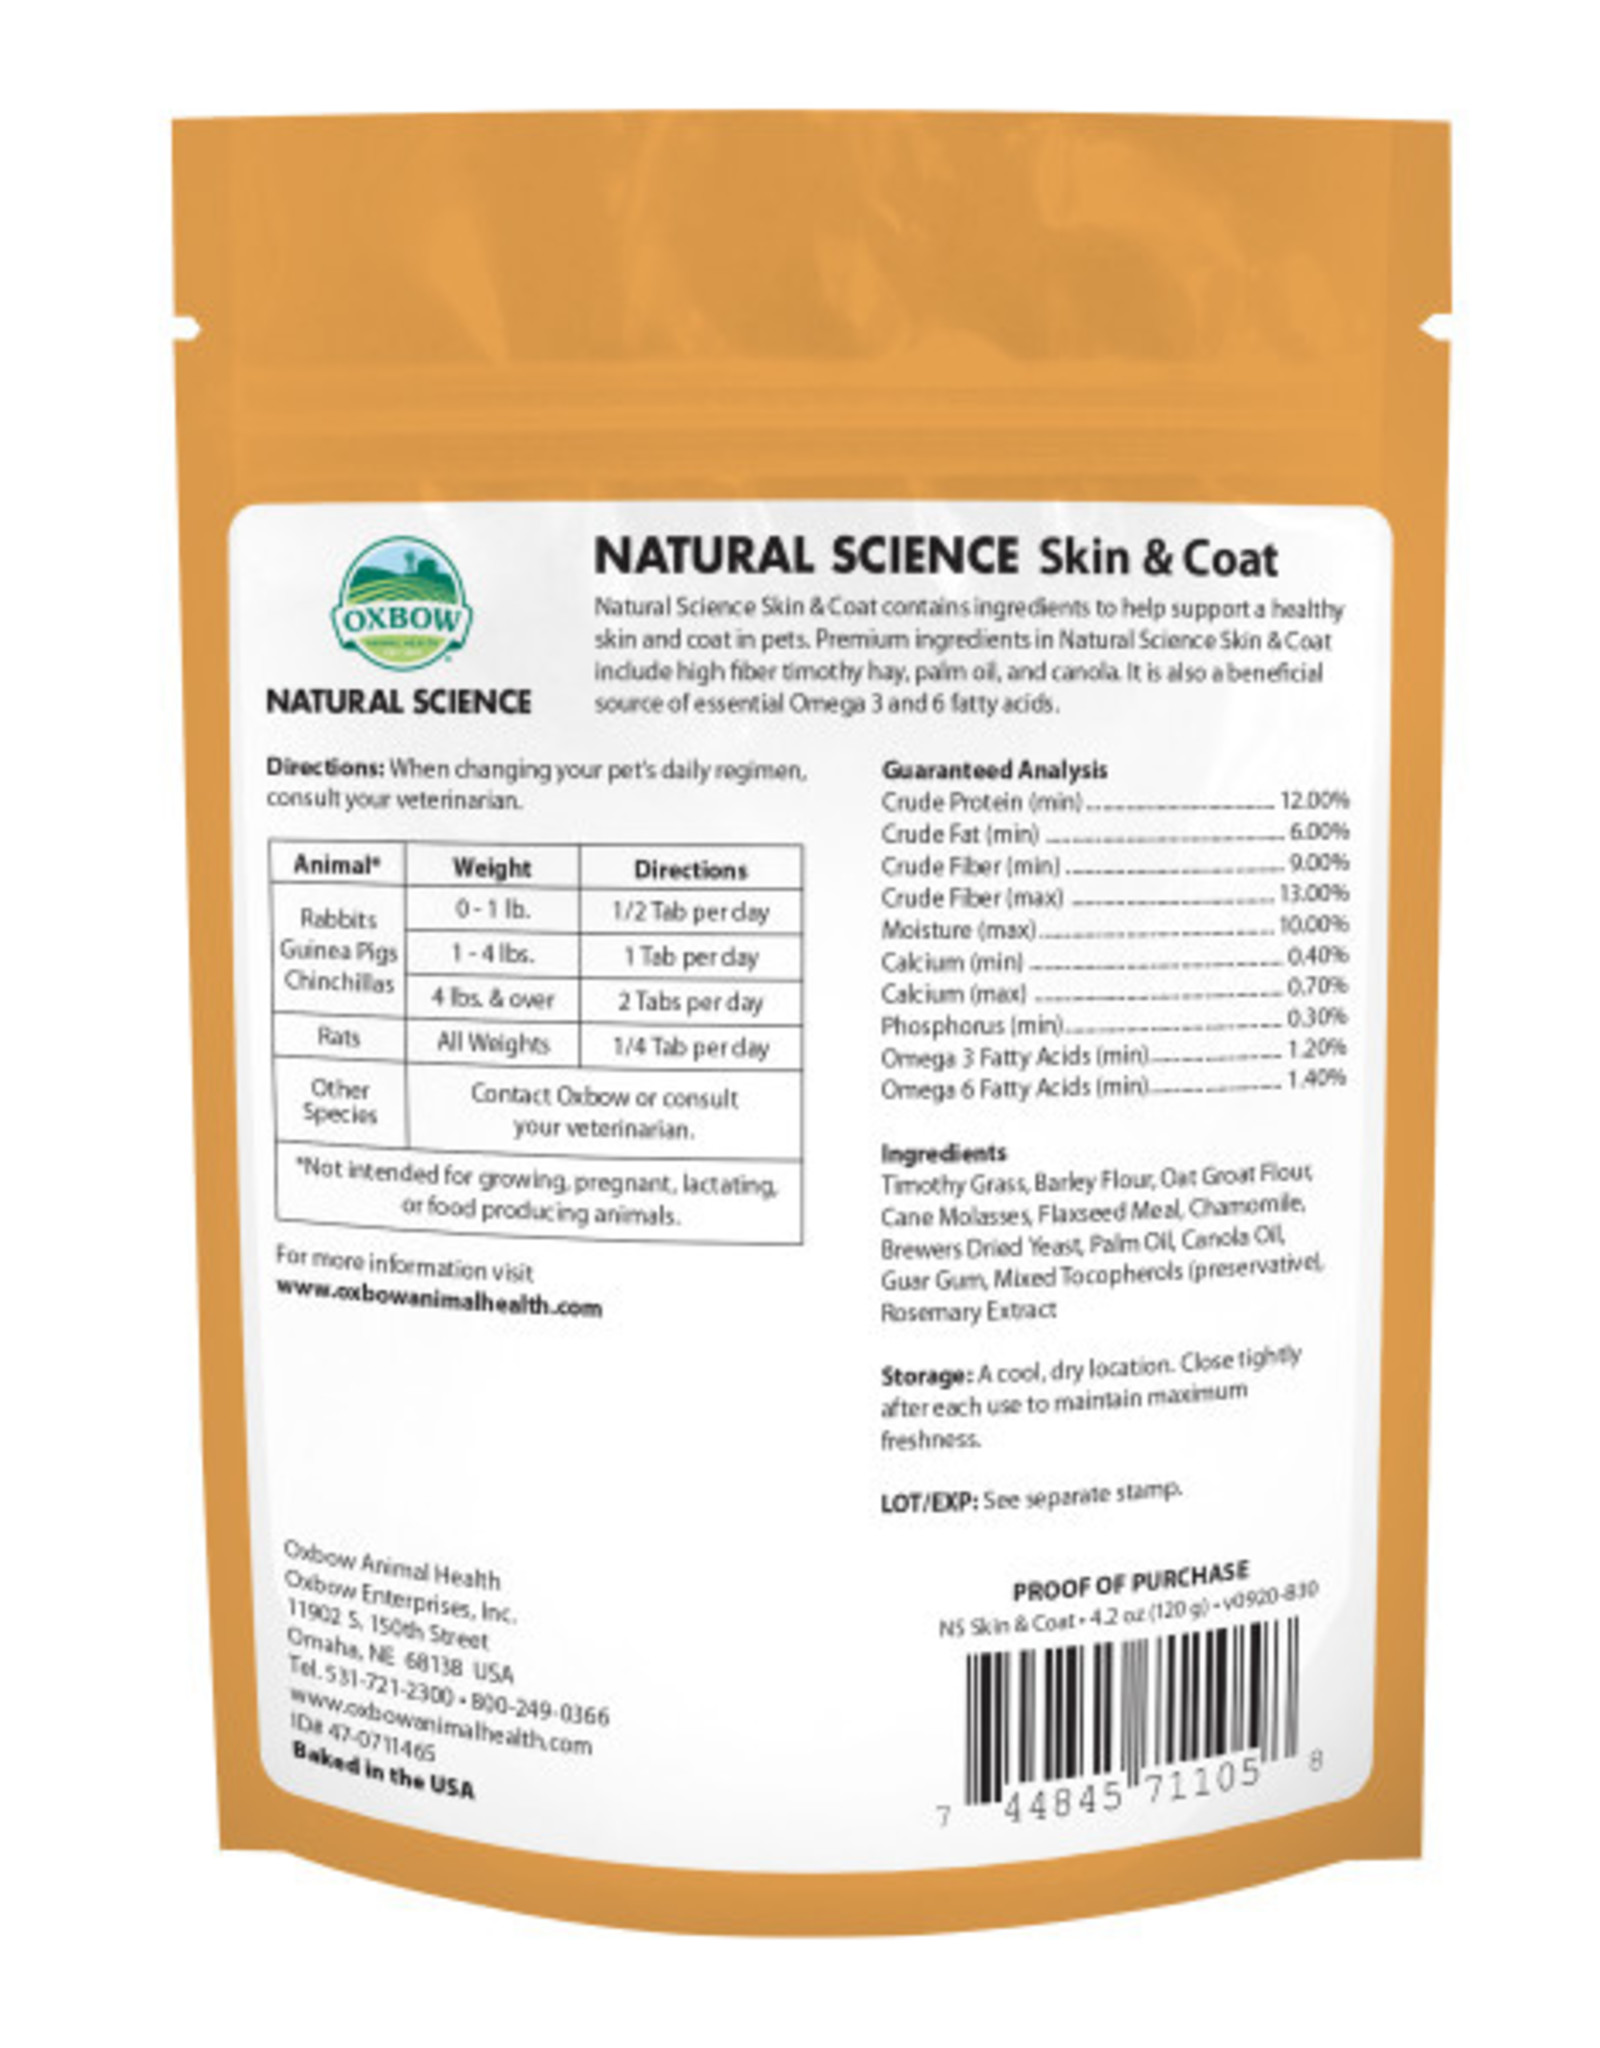 Oxbow Natural Science Skin & Coat Supplement